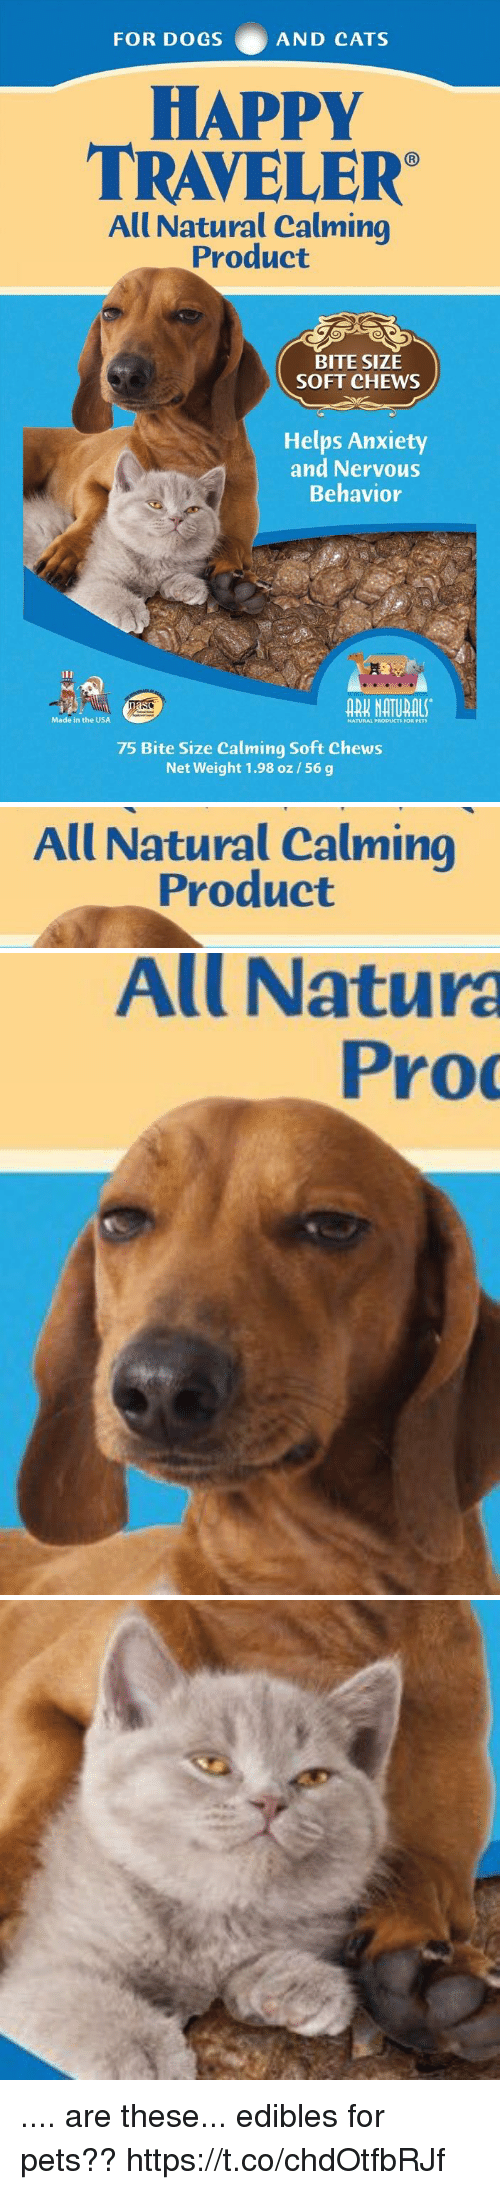 All natural calming product bite size soft chews